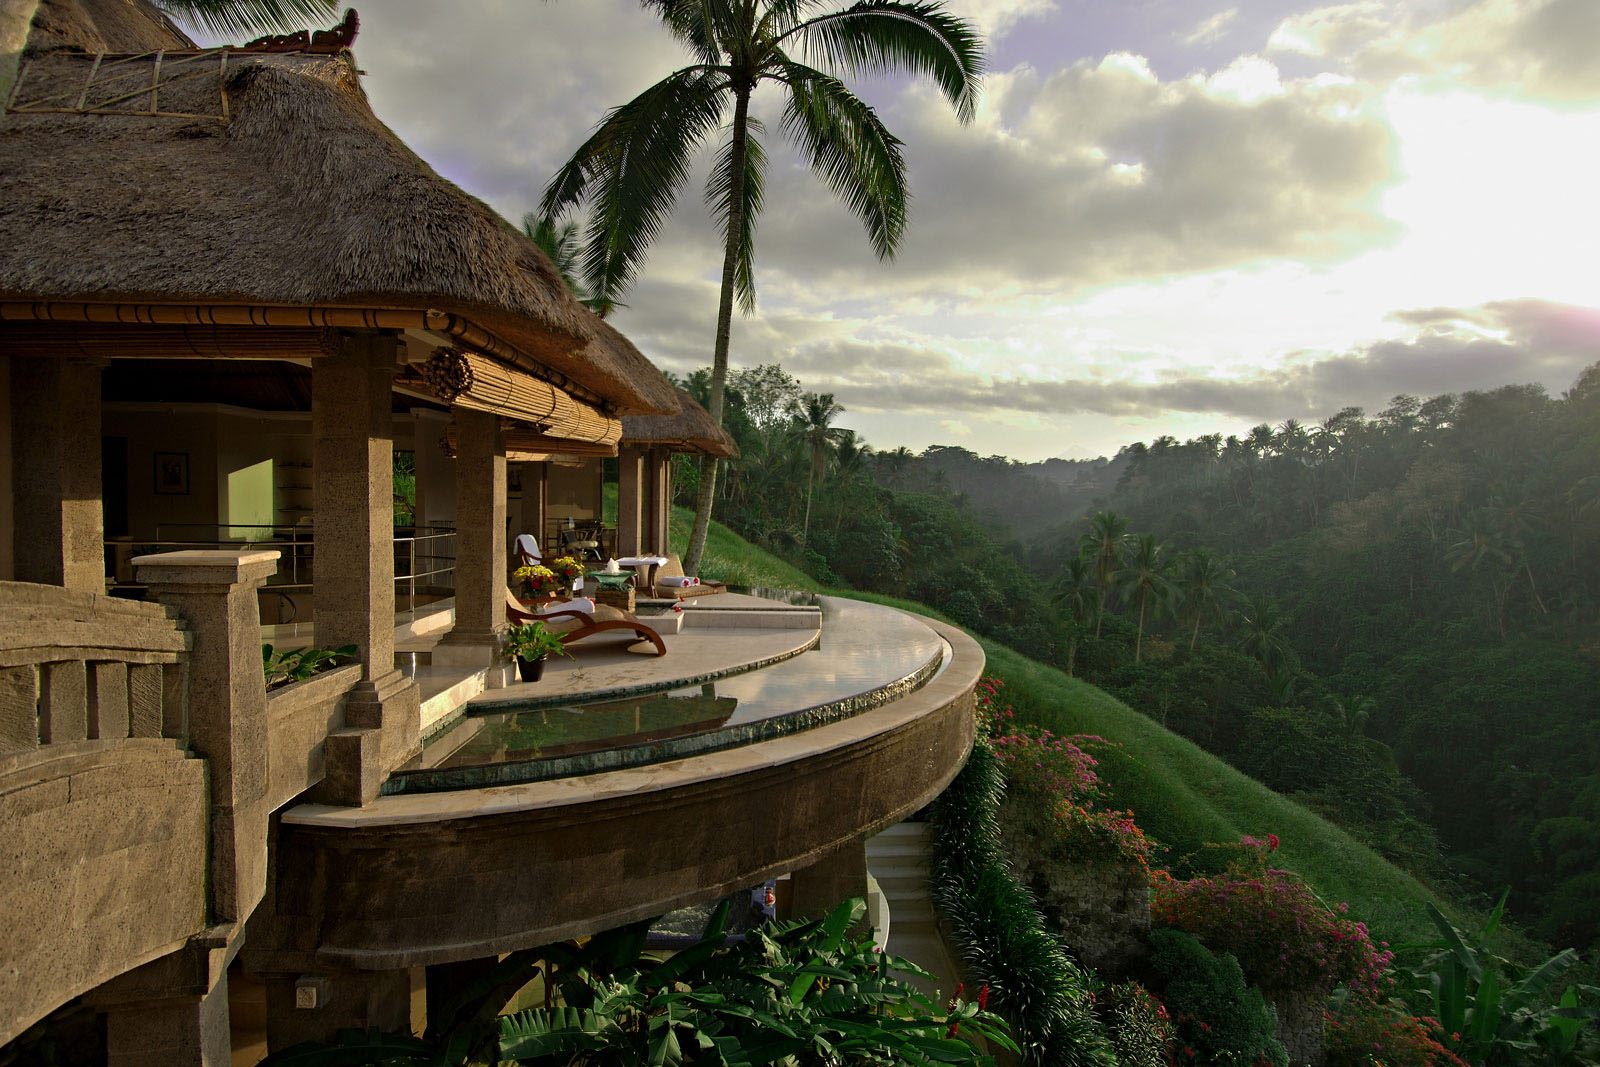 Viceroy-Bali-Resort_1.jpg